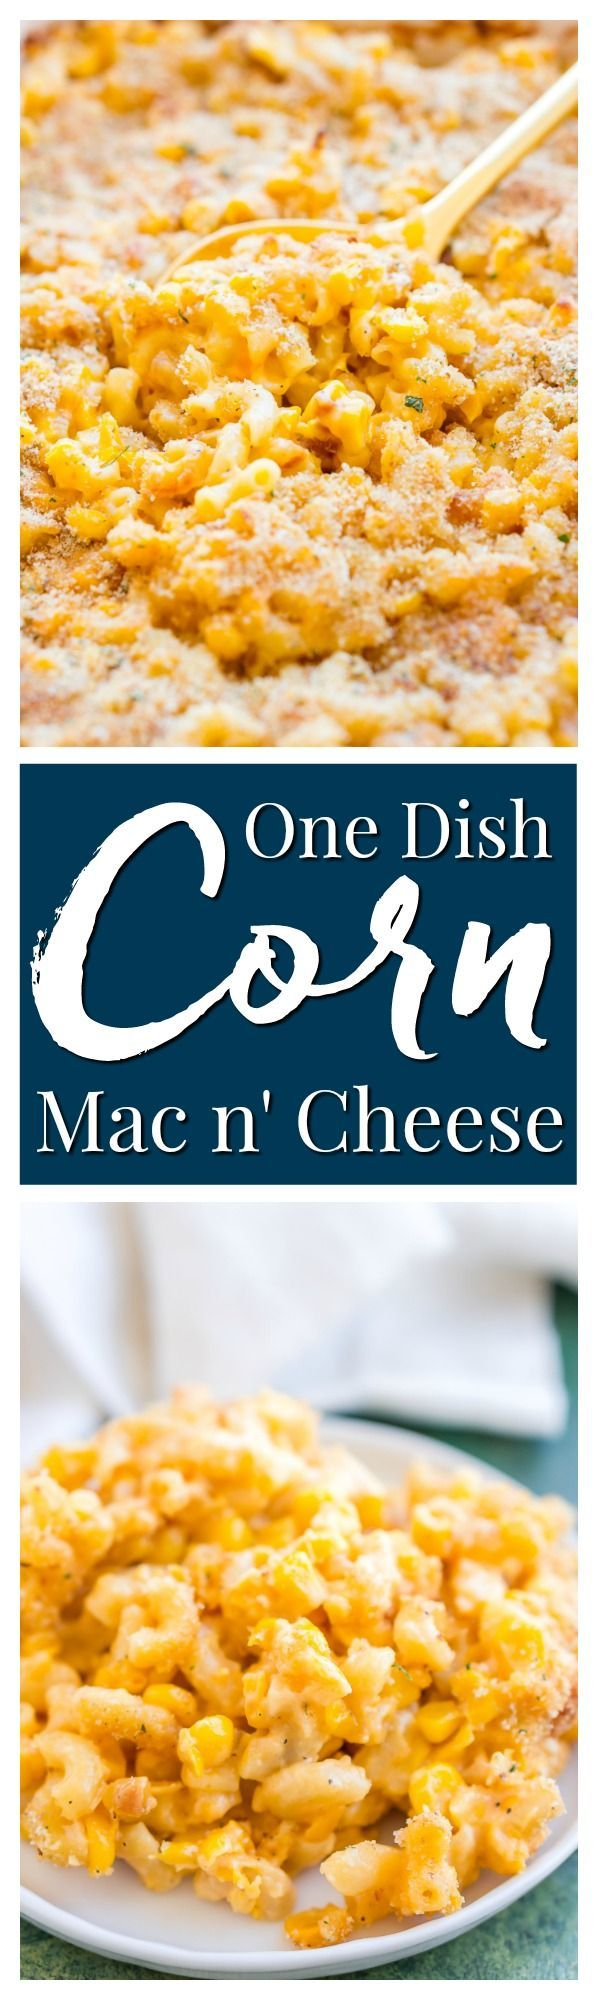 This One Dish Corn Mac n' Cheese has all the comfort you need. Loaded with cheese and sweet corn, it's a pasta dish that's perfect for potlucks and game days. via @sugarandsoulco